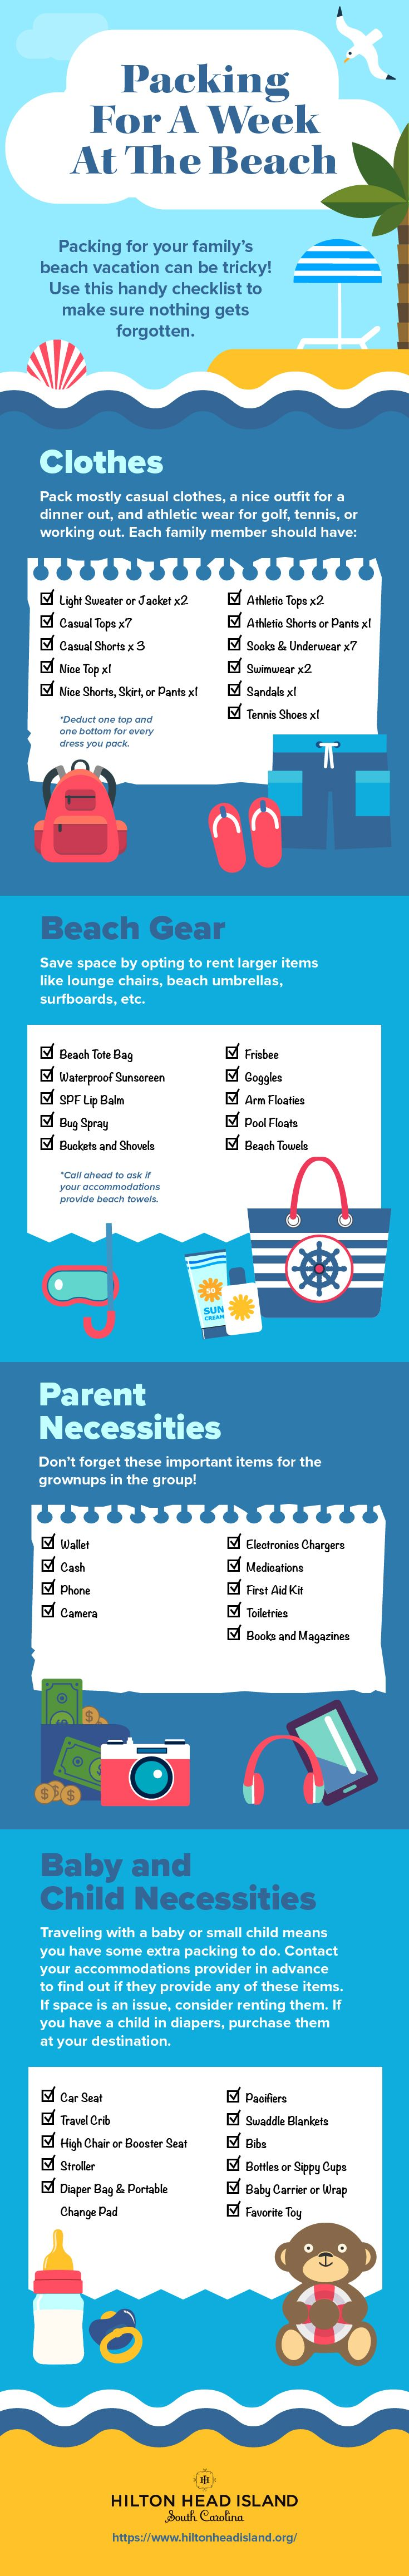 Infographic: How to Pack for Your Family Beach Vacation | Traveling with kids or babies? Use this handy vacation packing checklist to make packing for a week at the beach a breeze! {Click to learn more about vacationing on Hilton Head Island, South Carolina.}